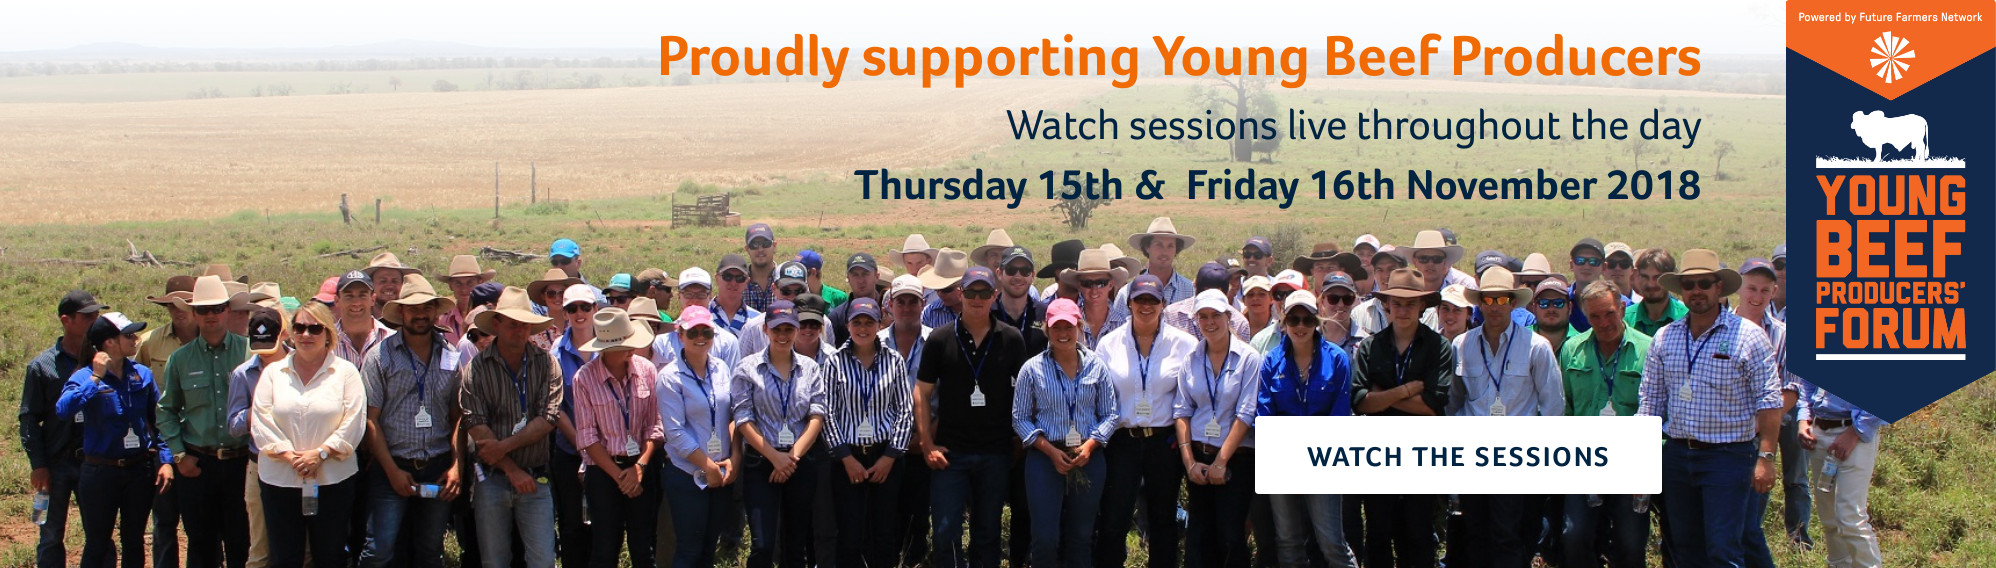 Young Beef Producers Forum